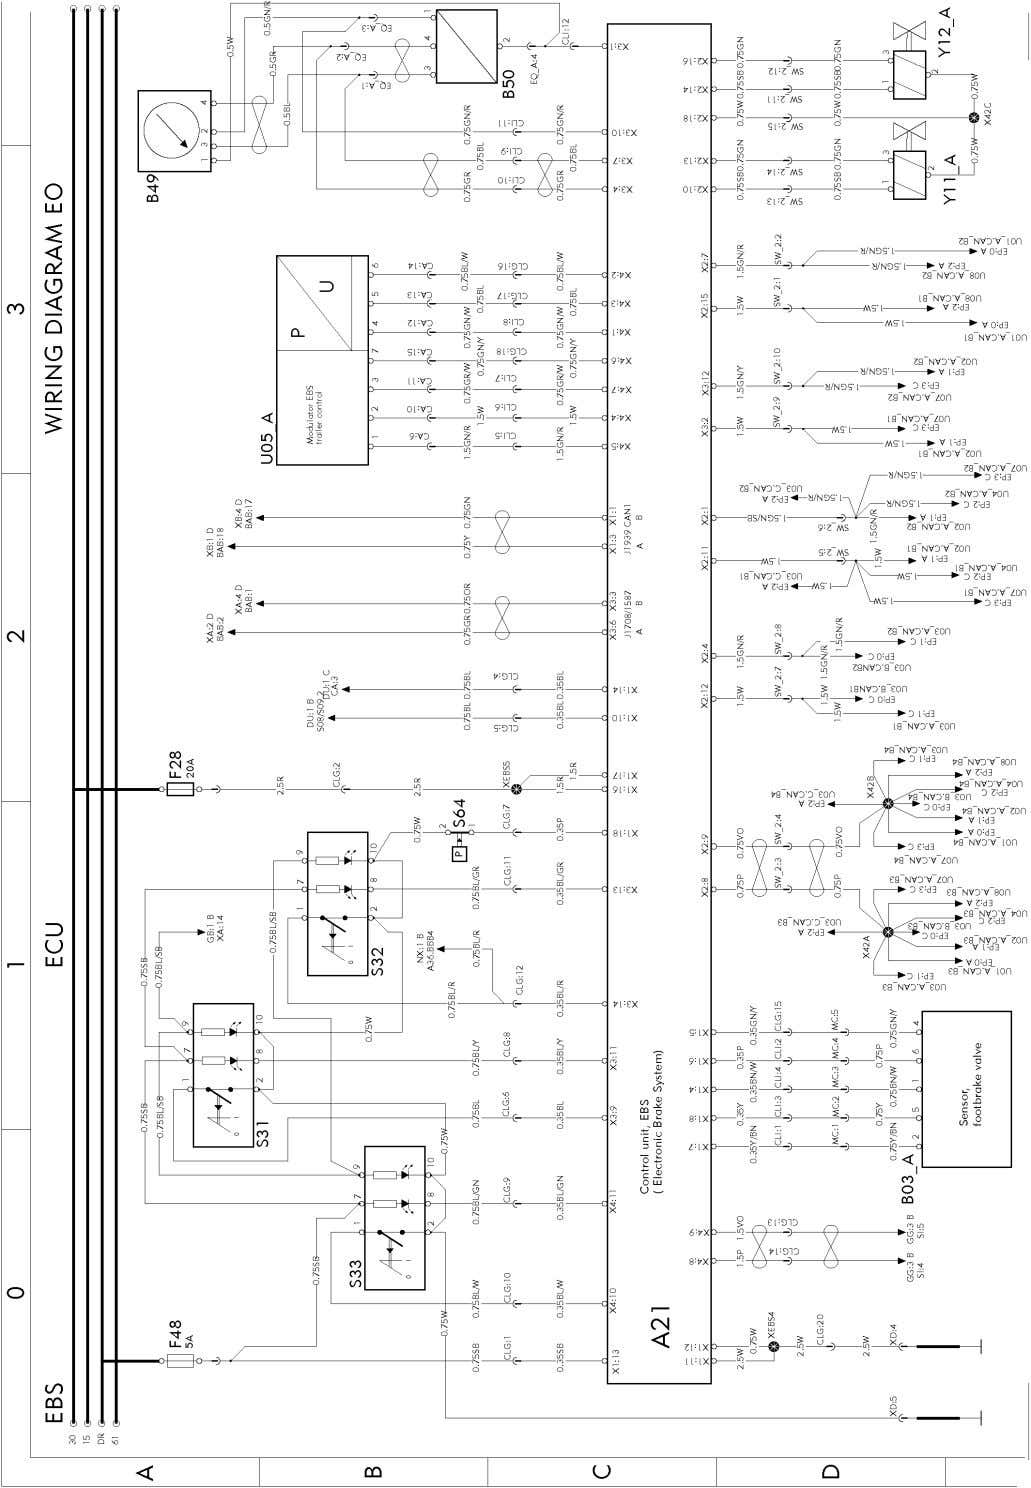 T3028415 Wiring diagram Page 43 (298)